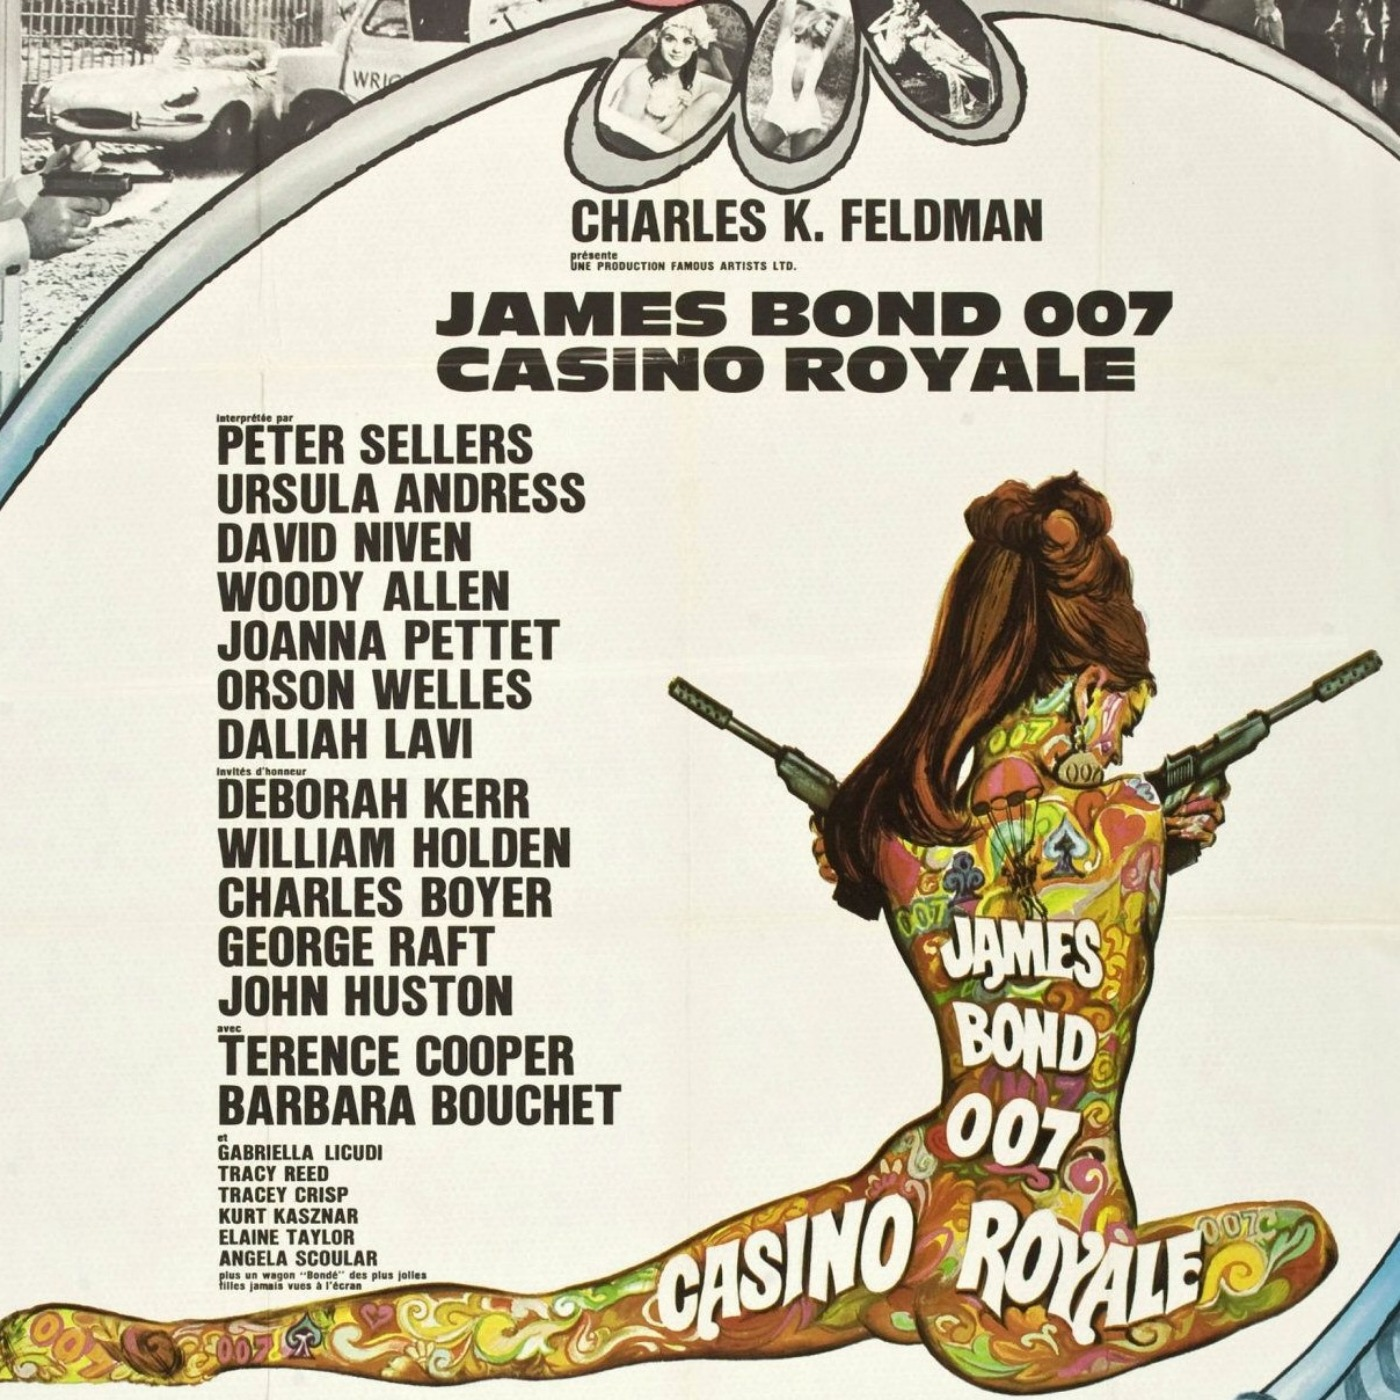 PODCAST CINEMA | critique du film JAMES BOND CASINO ROYALE (1967) | CinéMaRadio